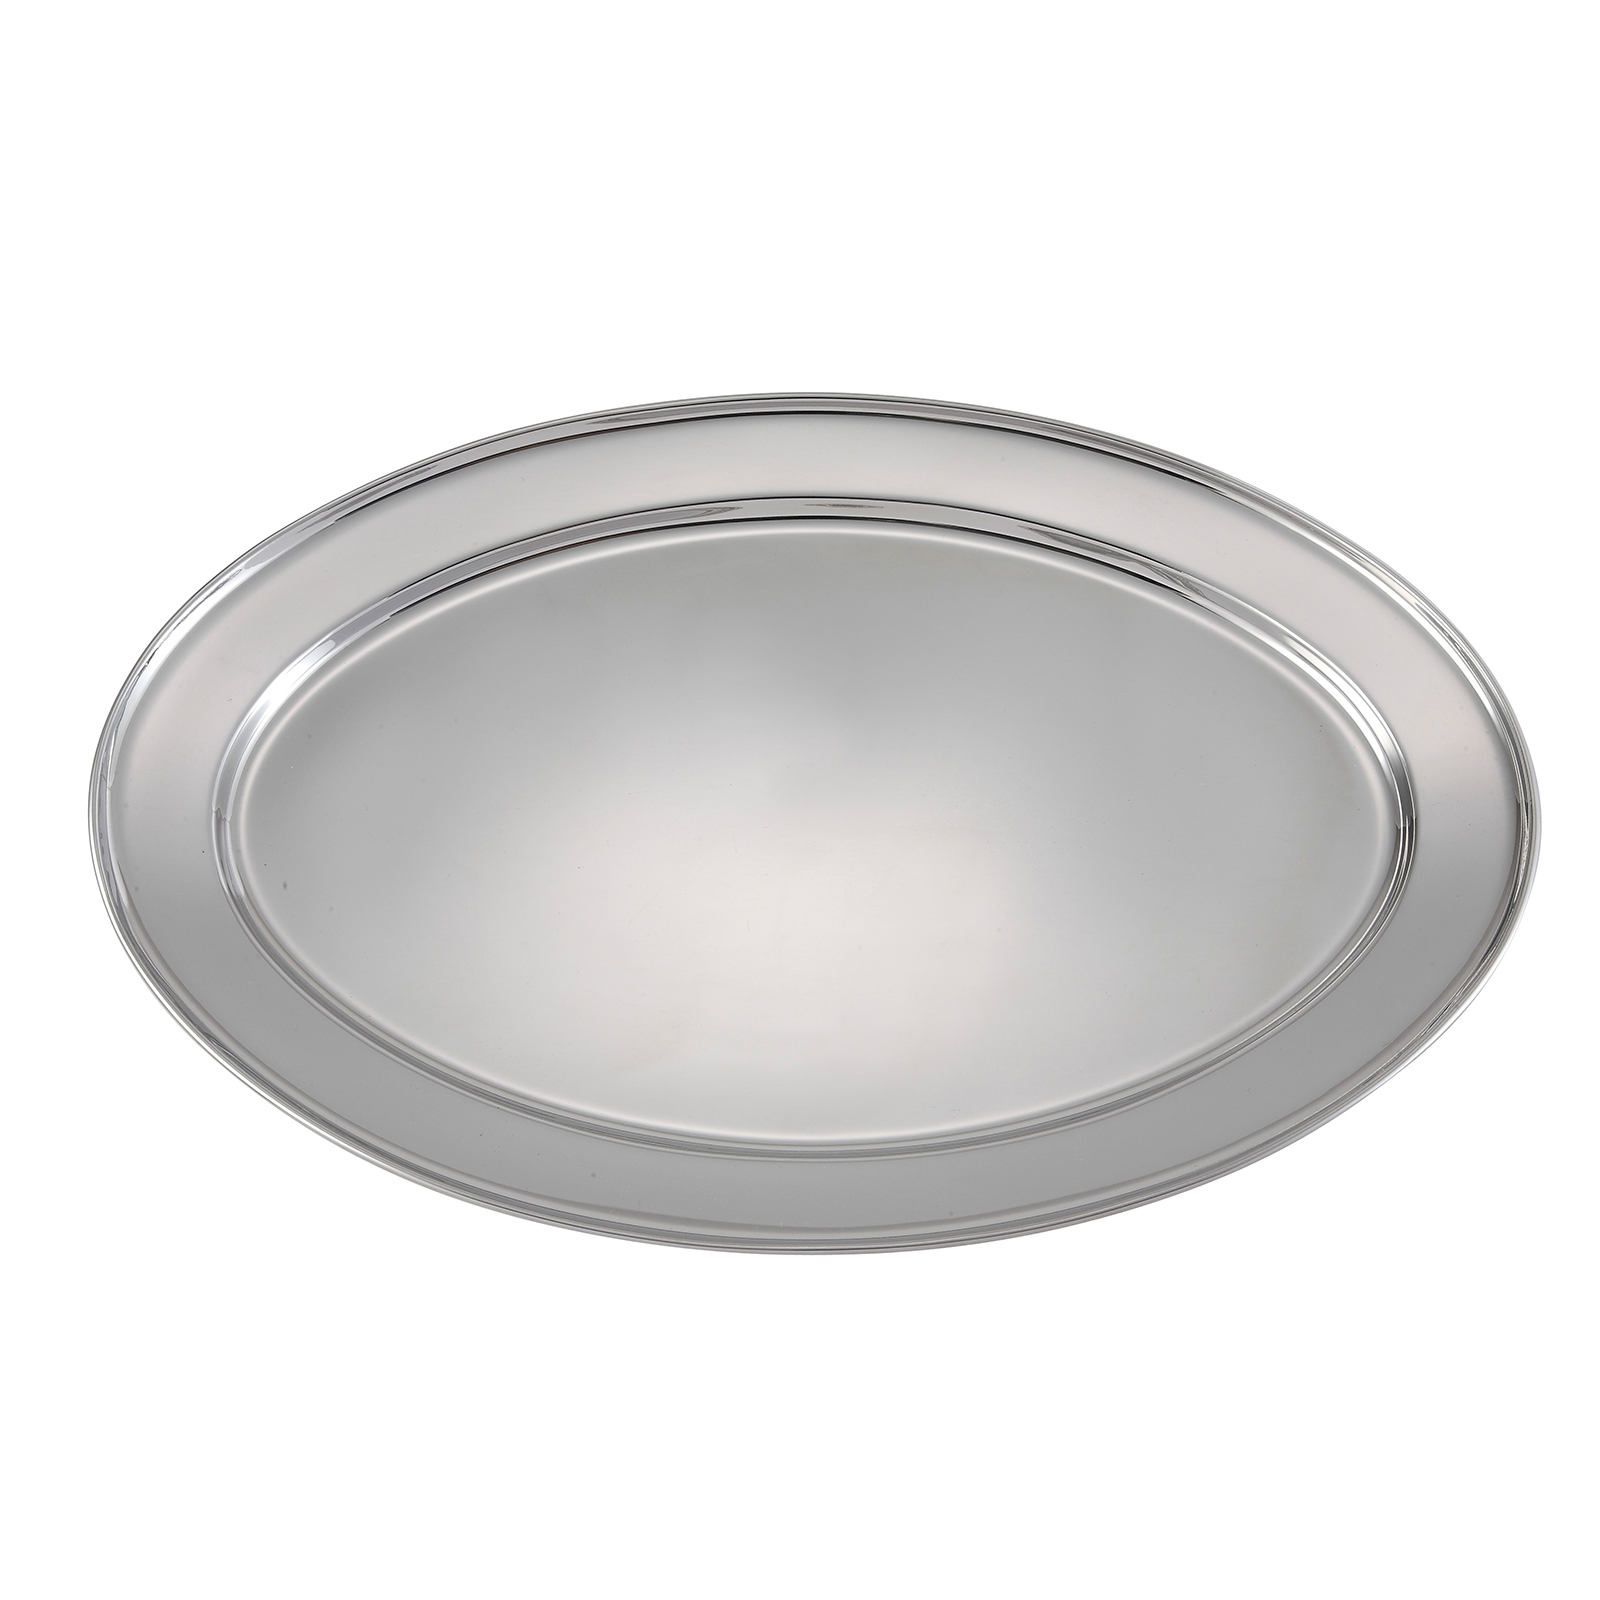 Winco OPL-20 platter, stainless steel